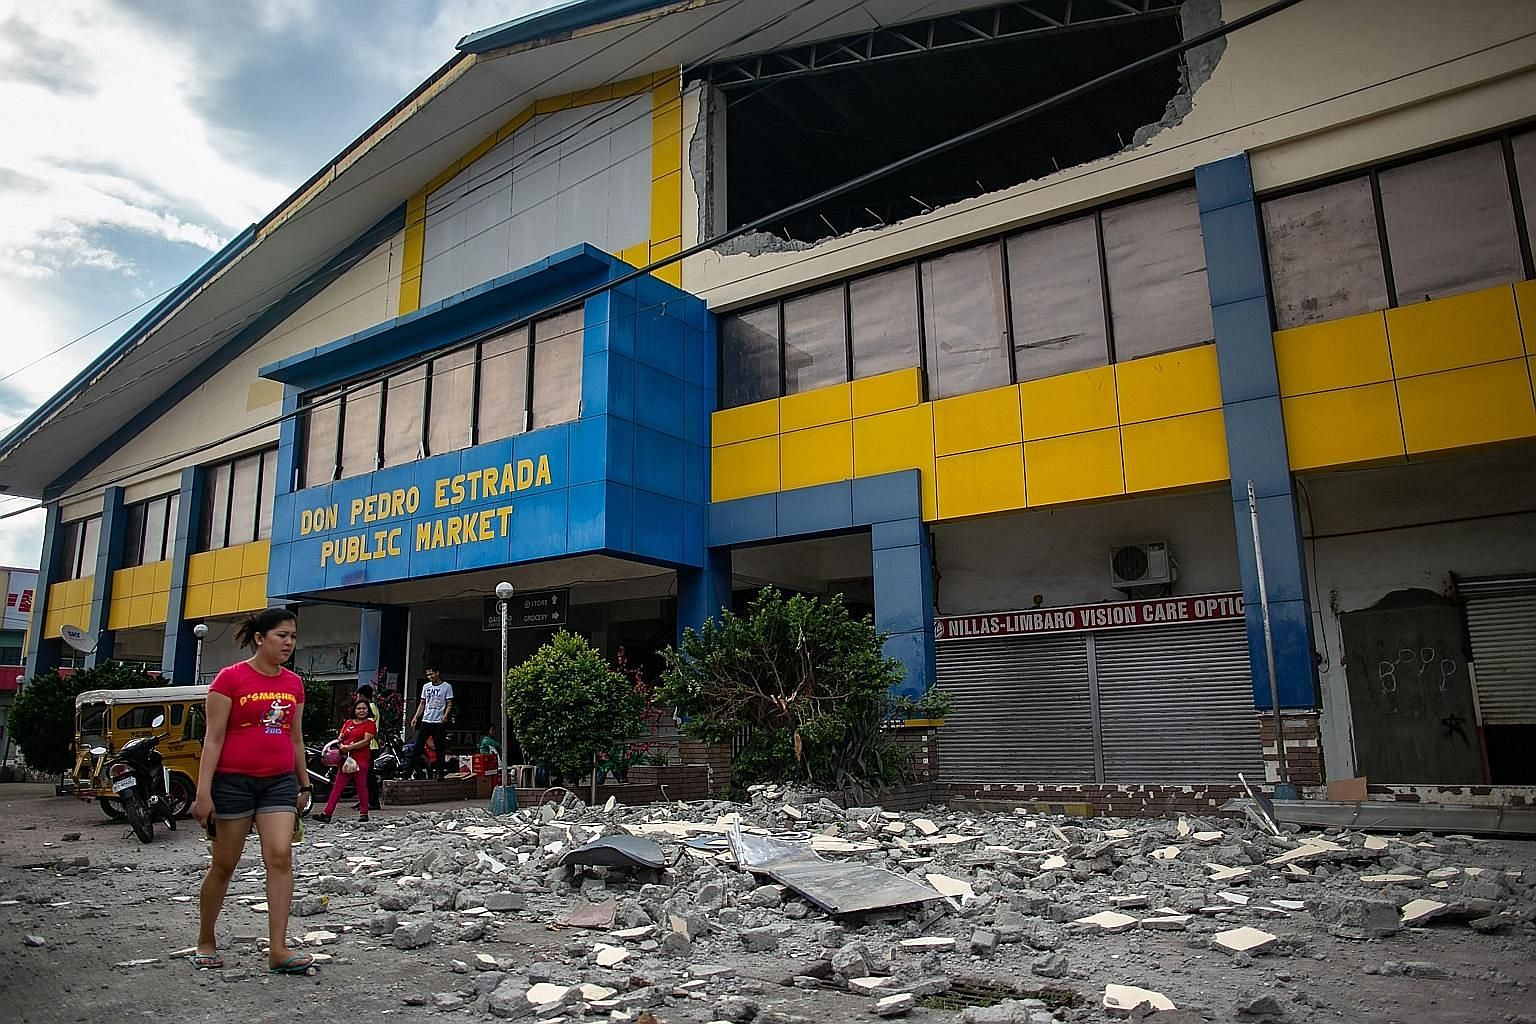 Debris from a partially damaged building in the city of Digos in Davao del Sur province on the southern Philippine island of Mindanao yesterday, after a 6.4-magnitude earthquake struck the Mindanao region on Wednesday night. The authorities said five